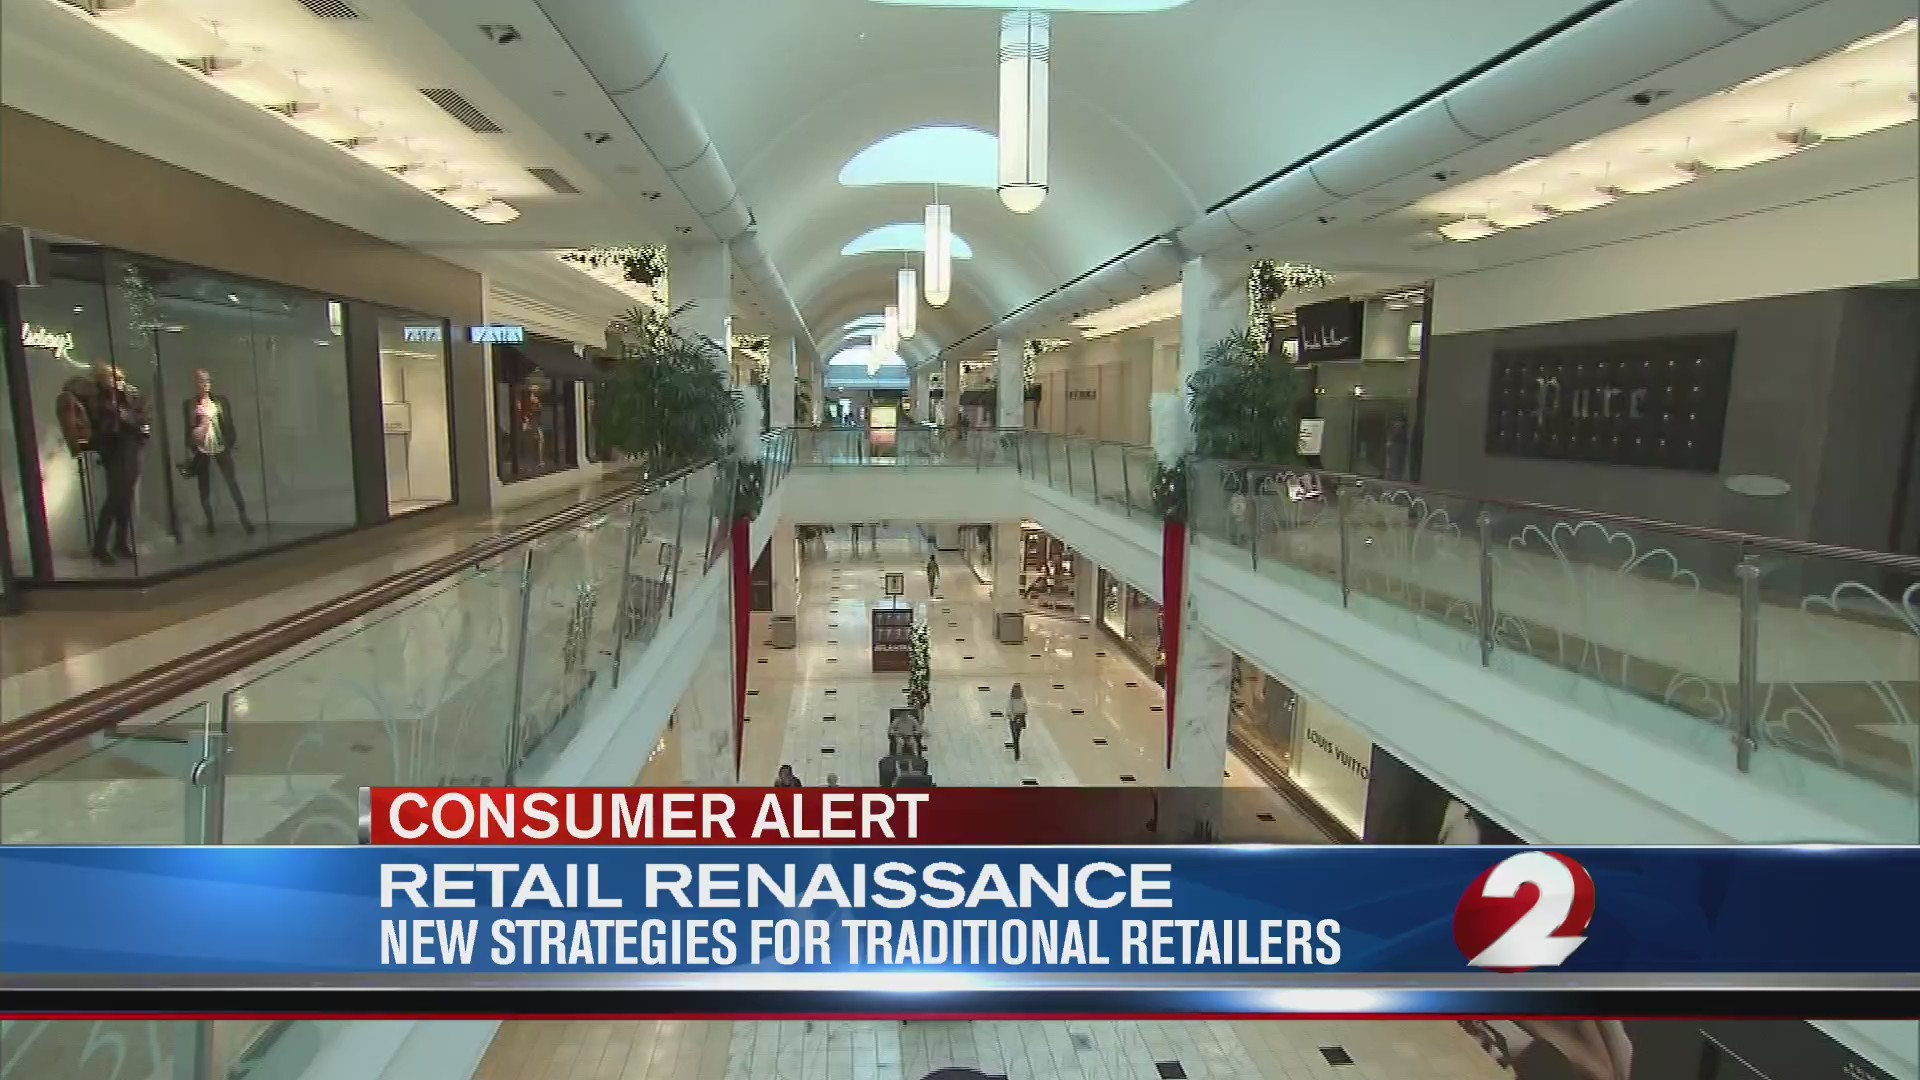 Retail Renaissance: New strategies for traditional retailers